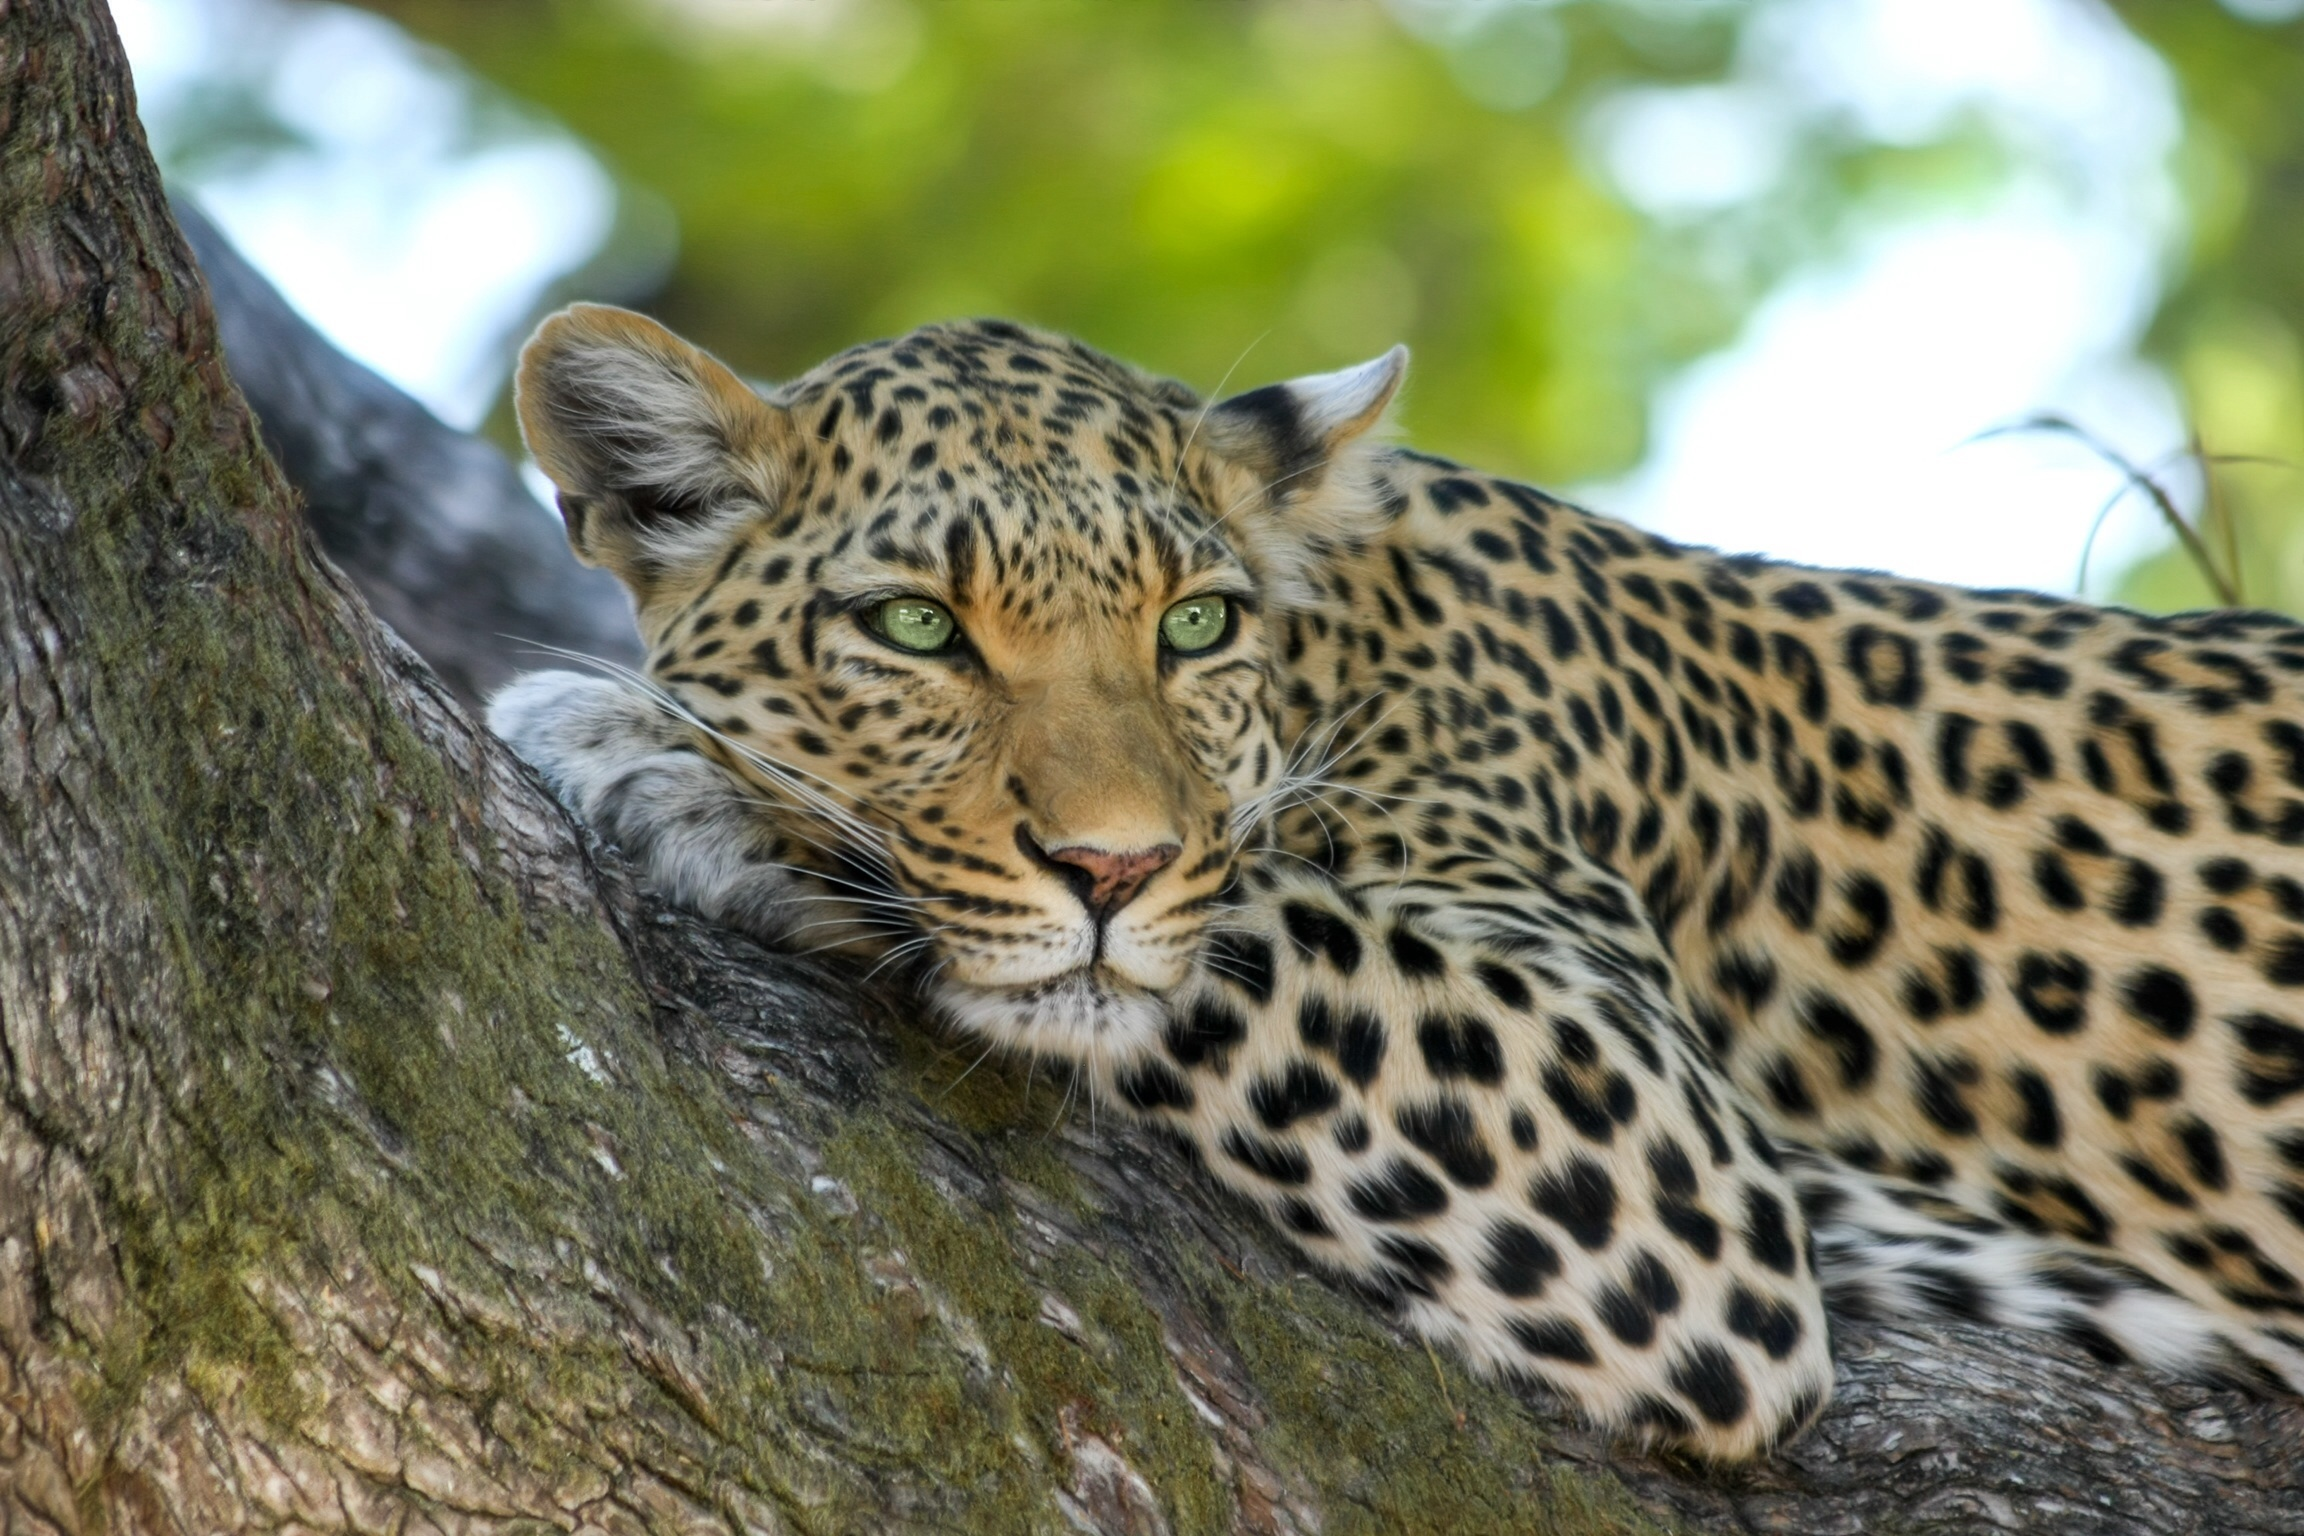 leopard-wildcat-big-cat-botswana-46254